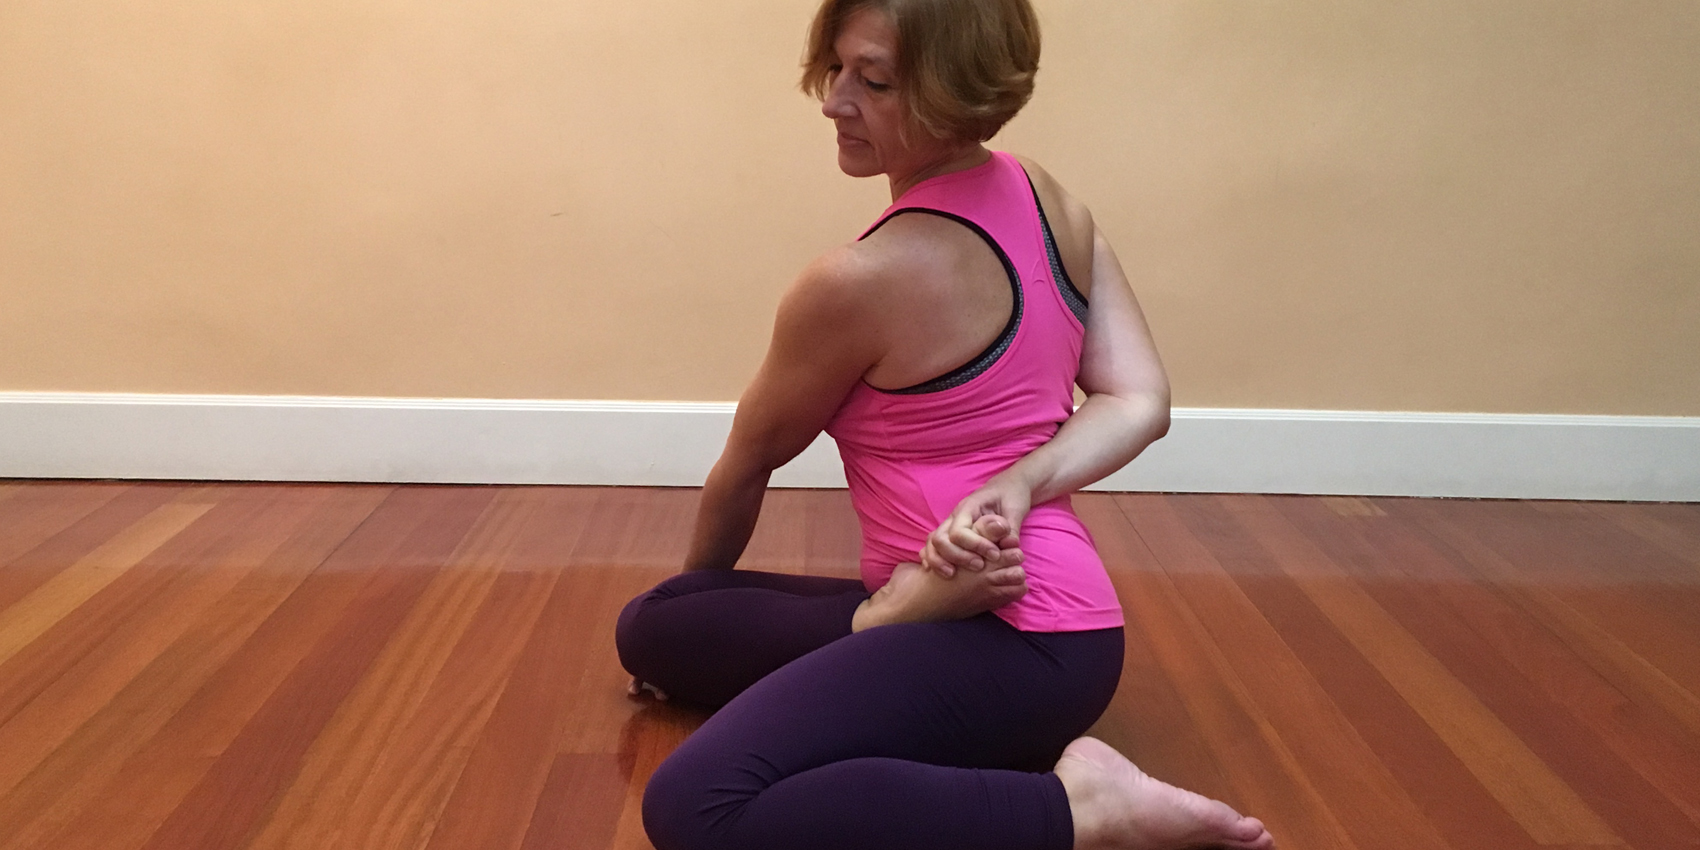 Going deeper into sitting postures - March 22